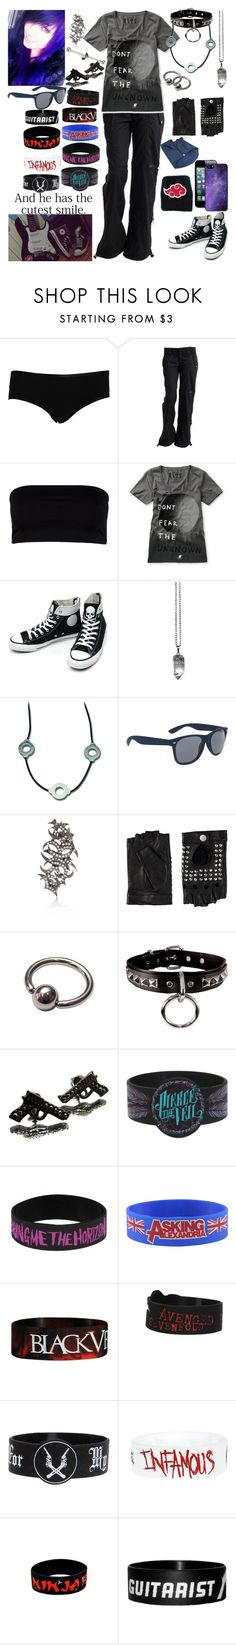 Truth and dare with the guys. Should I be regretting this? by rukiakuchiki12341 on Polyvore featuring Glamour Kills, Bench, AllSaints, STELLA McCARTNEY, Converse, River Island, Friis & Company, Retrò, INC International Concepts and Once Upon a Time